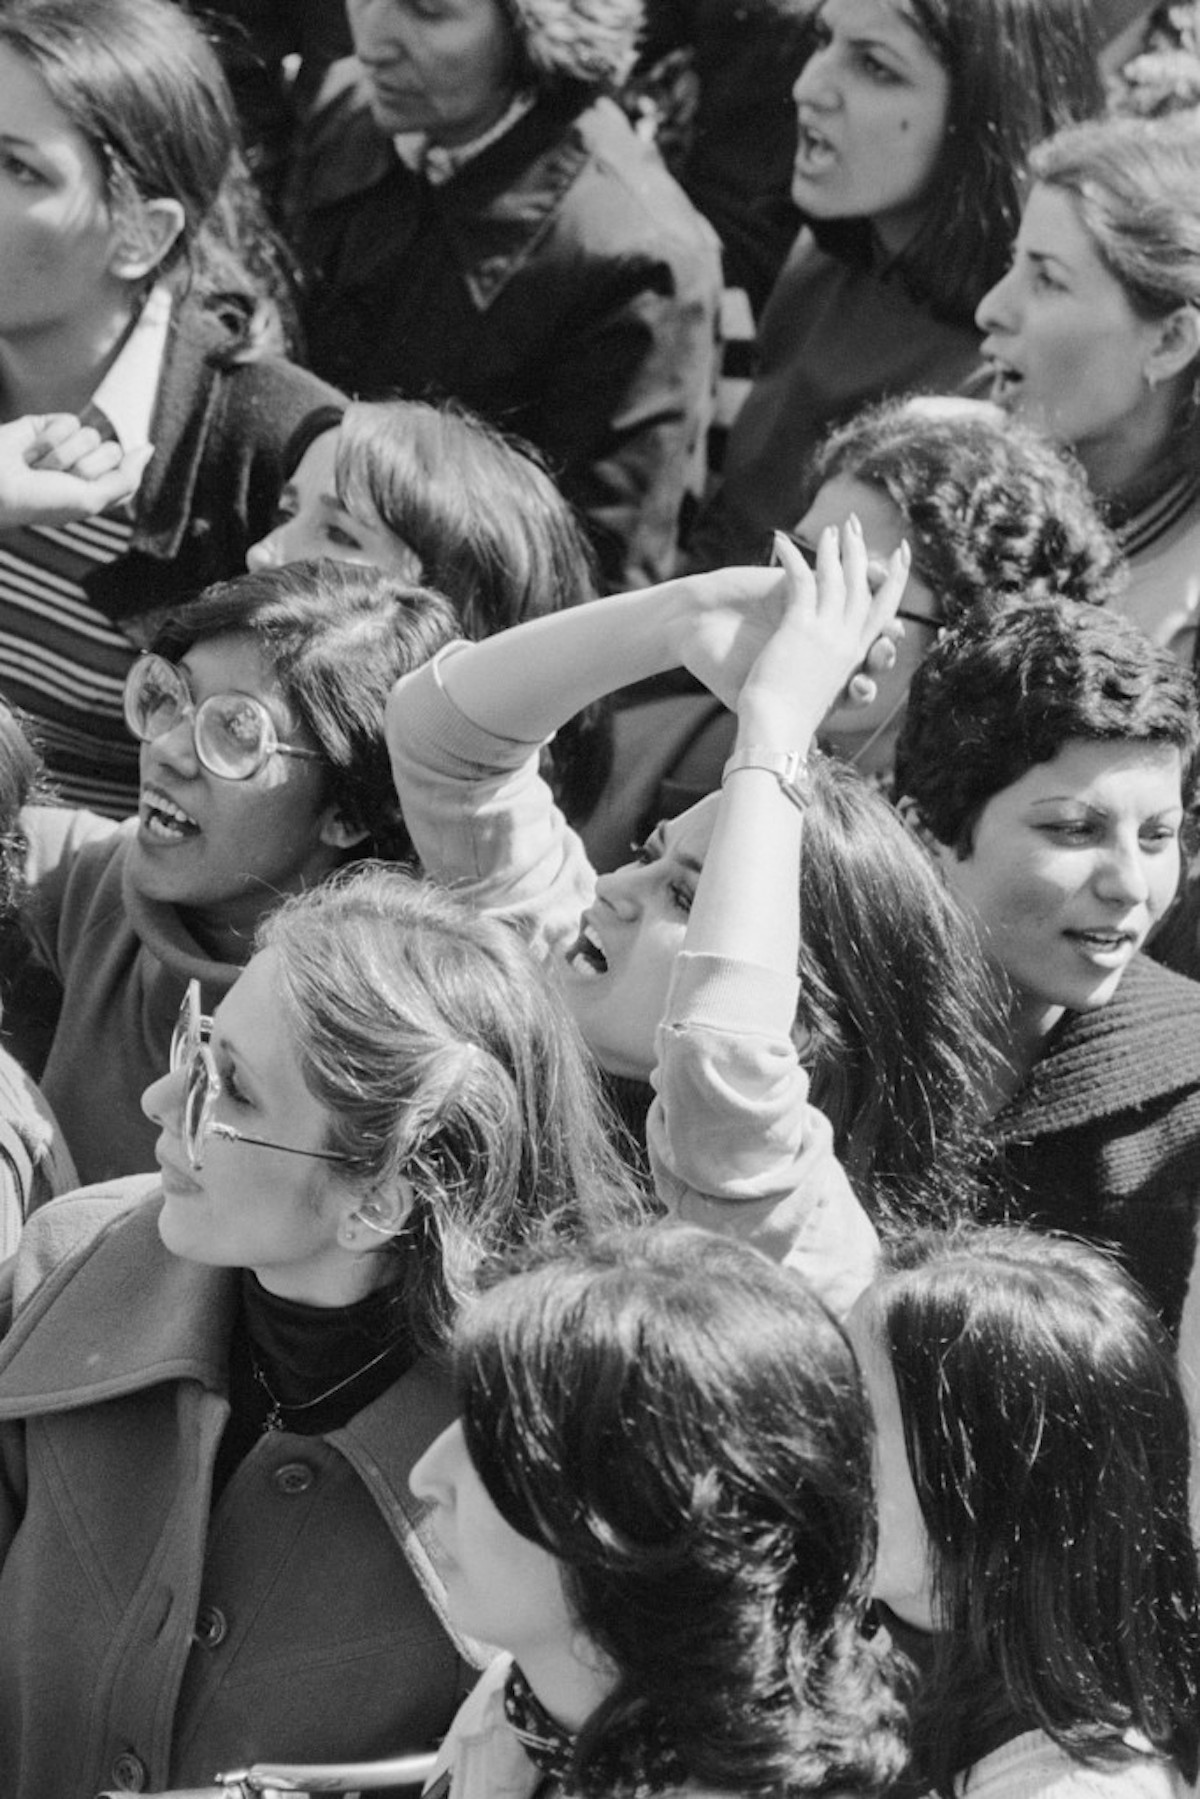 Iranian women protested the headscarf1979